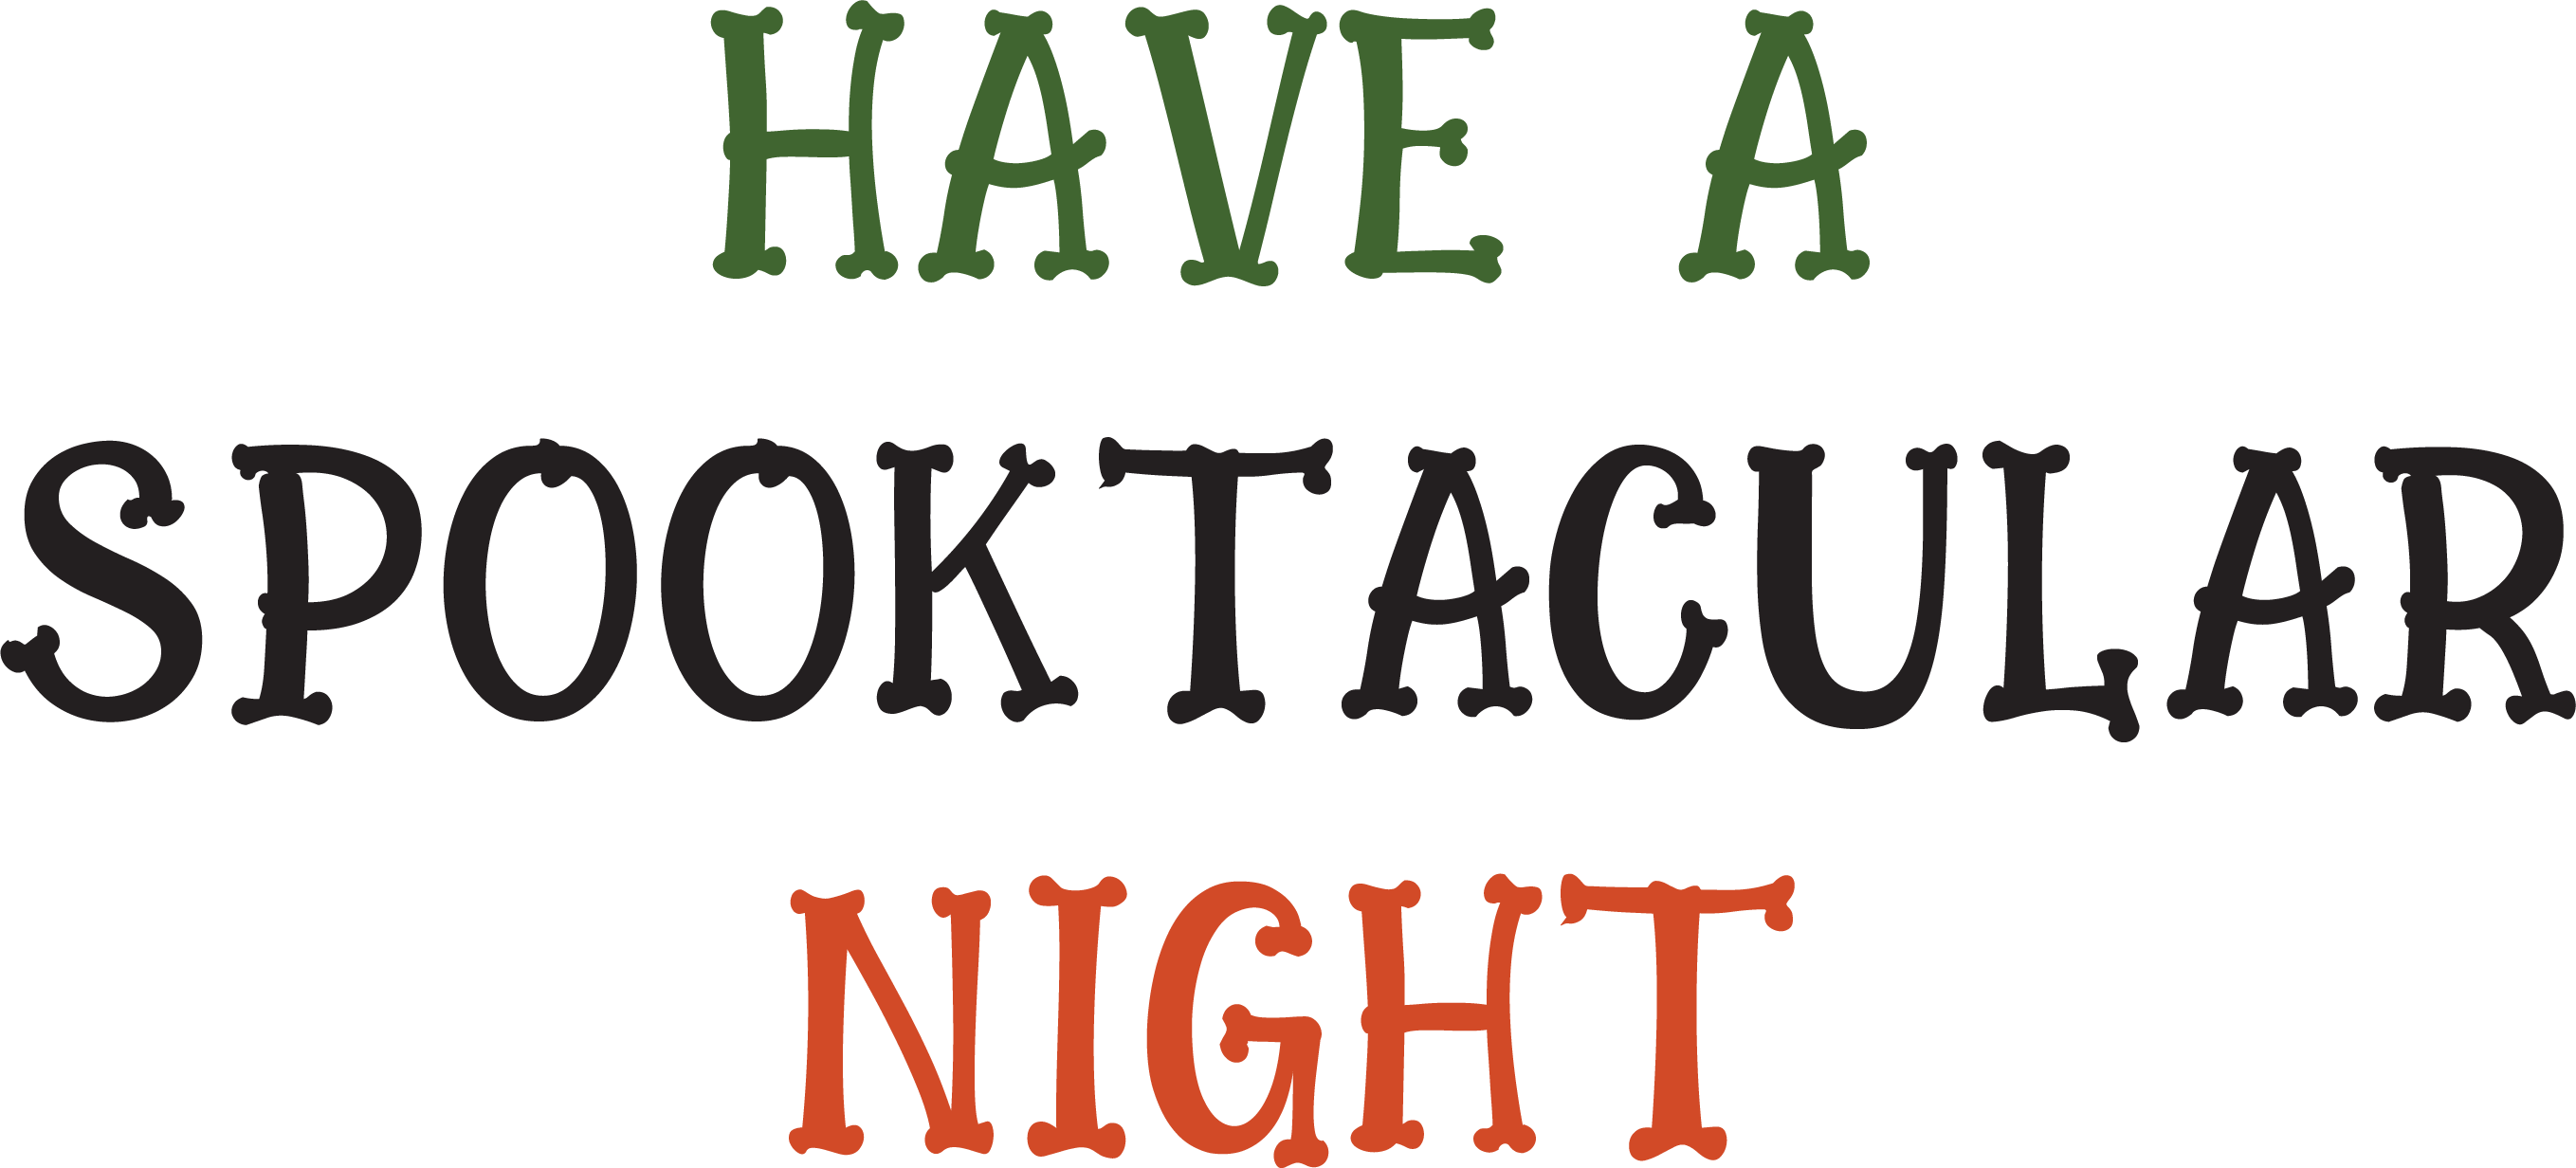 Have A Spooktacular Night SVG Cut File